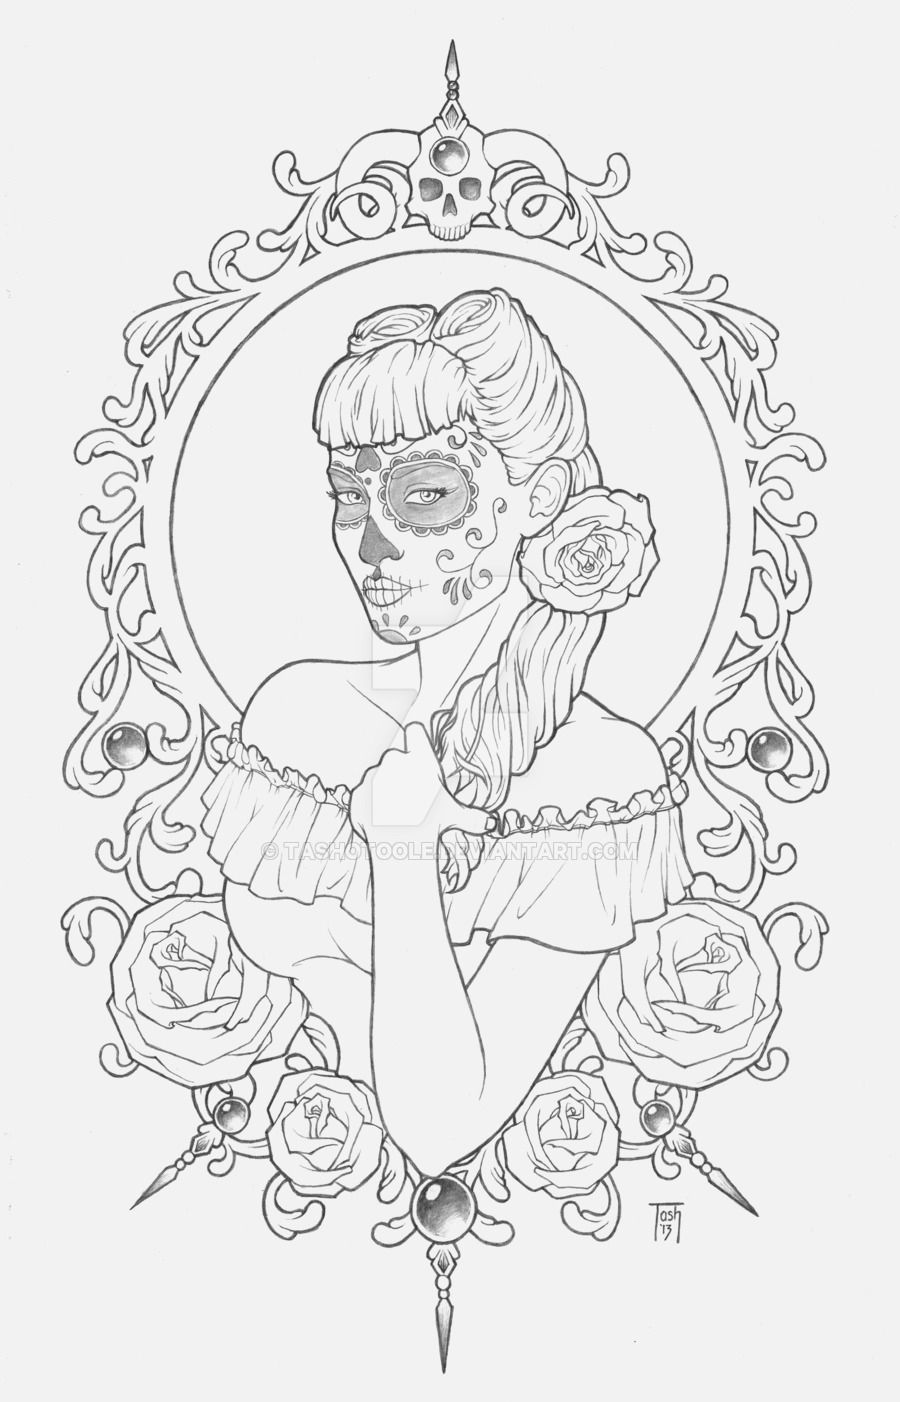 Coloring pages portraits - Find This Pin And More On Coloring Pages Portraits For Grown Ups